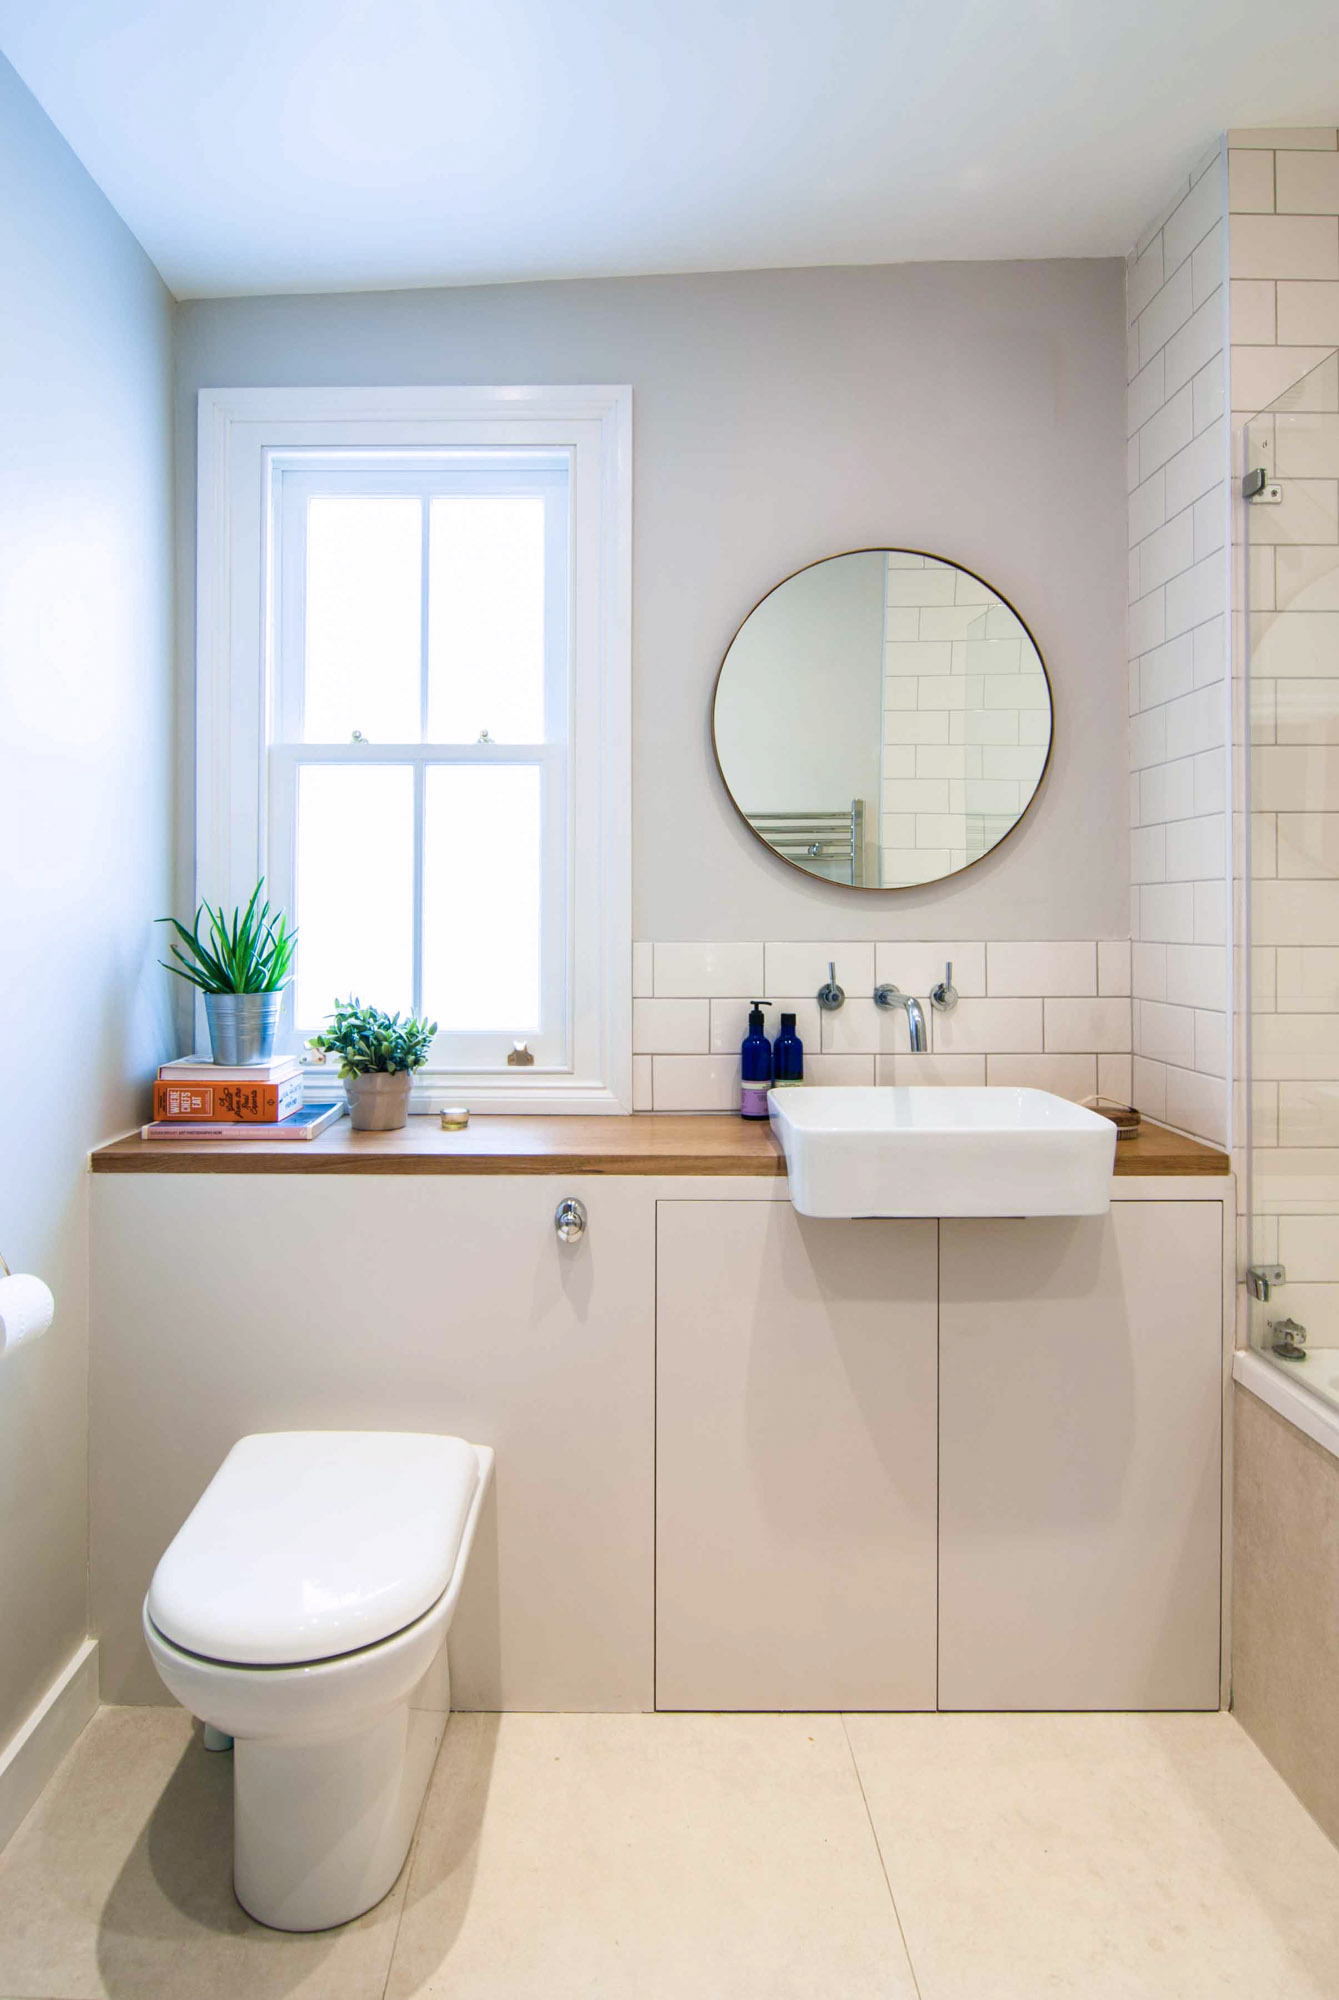 Photographer's House: Light and simple bathroom with a wooden worktop.